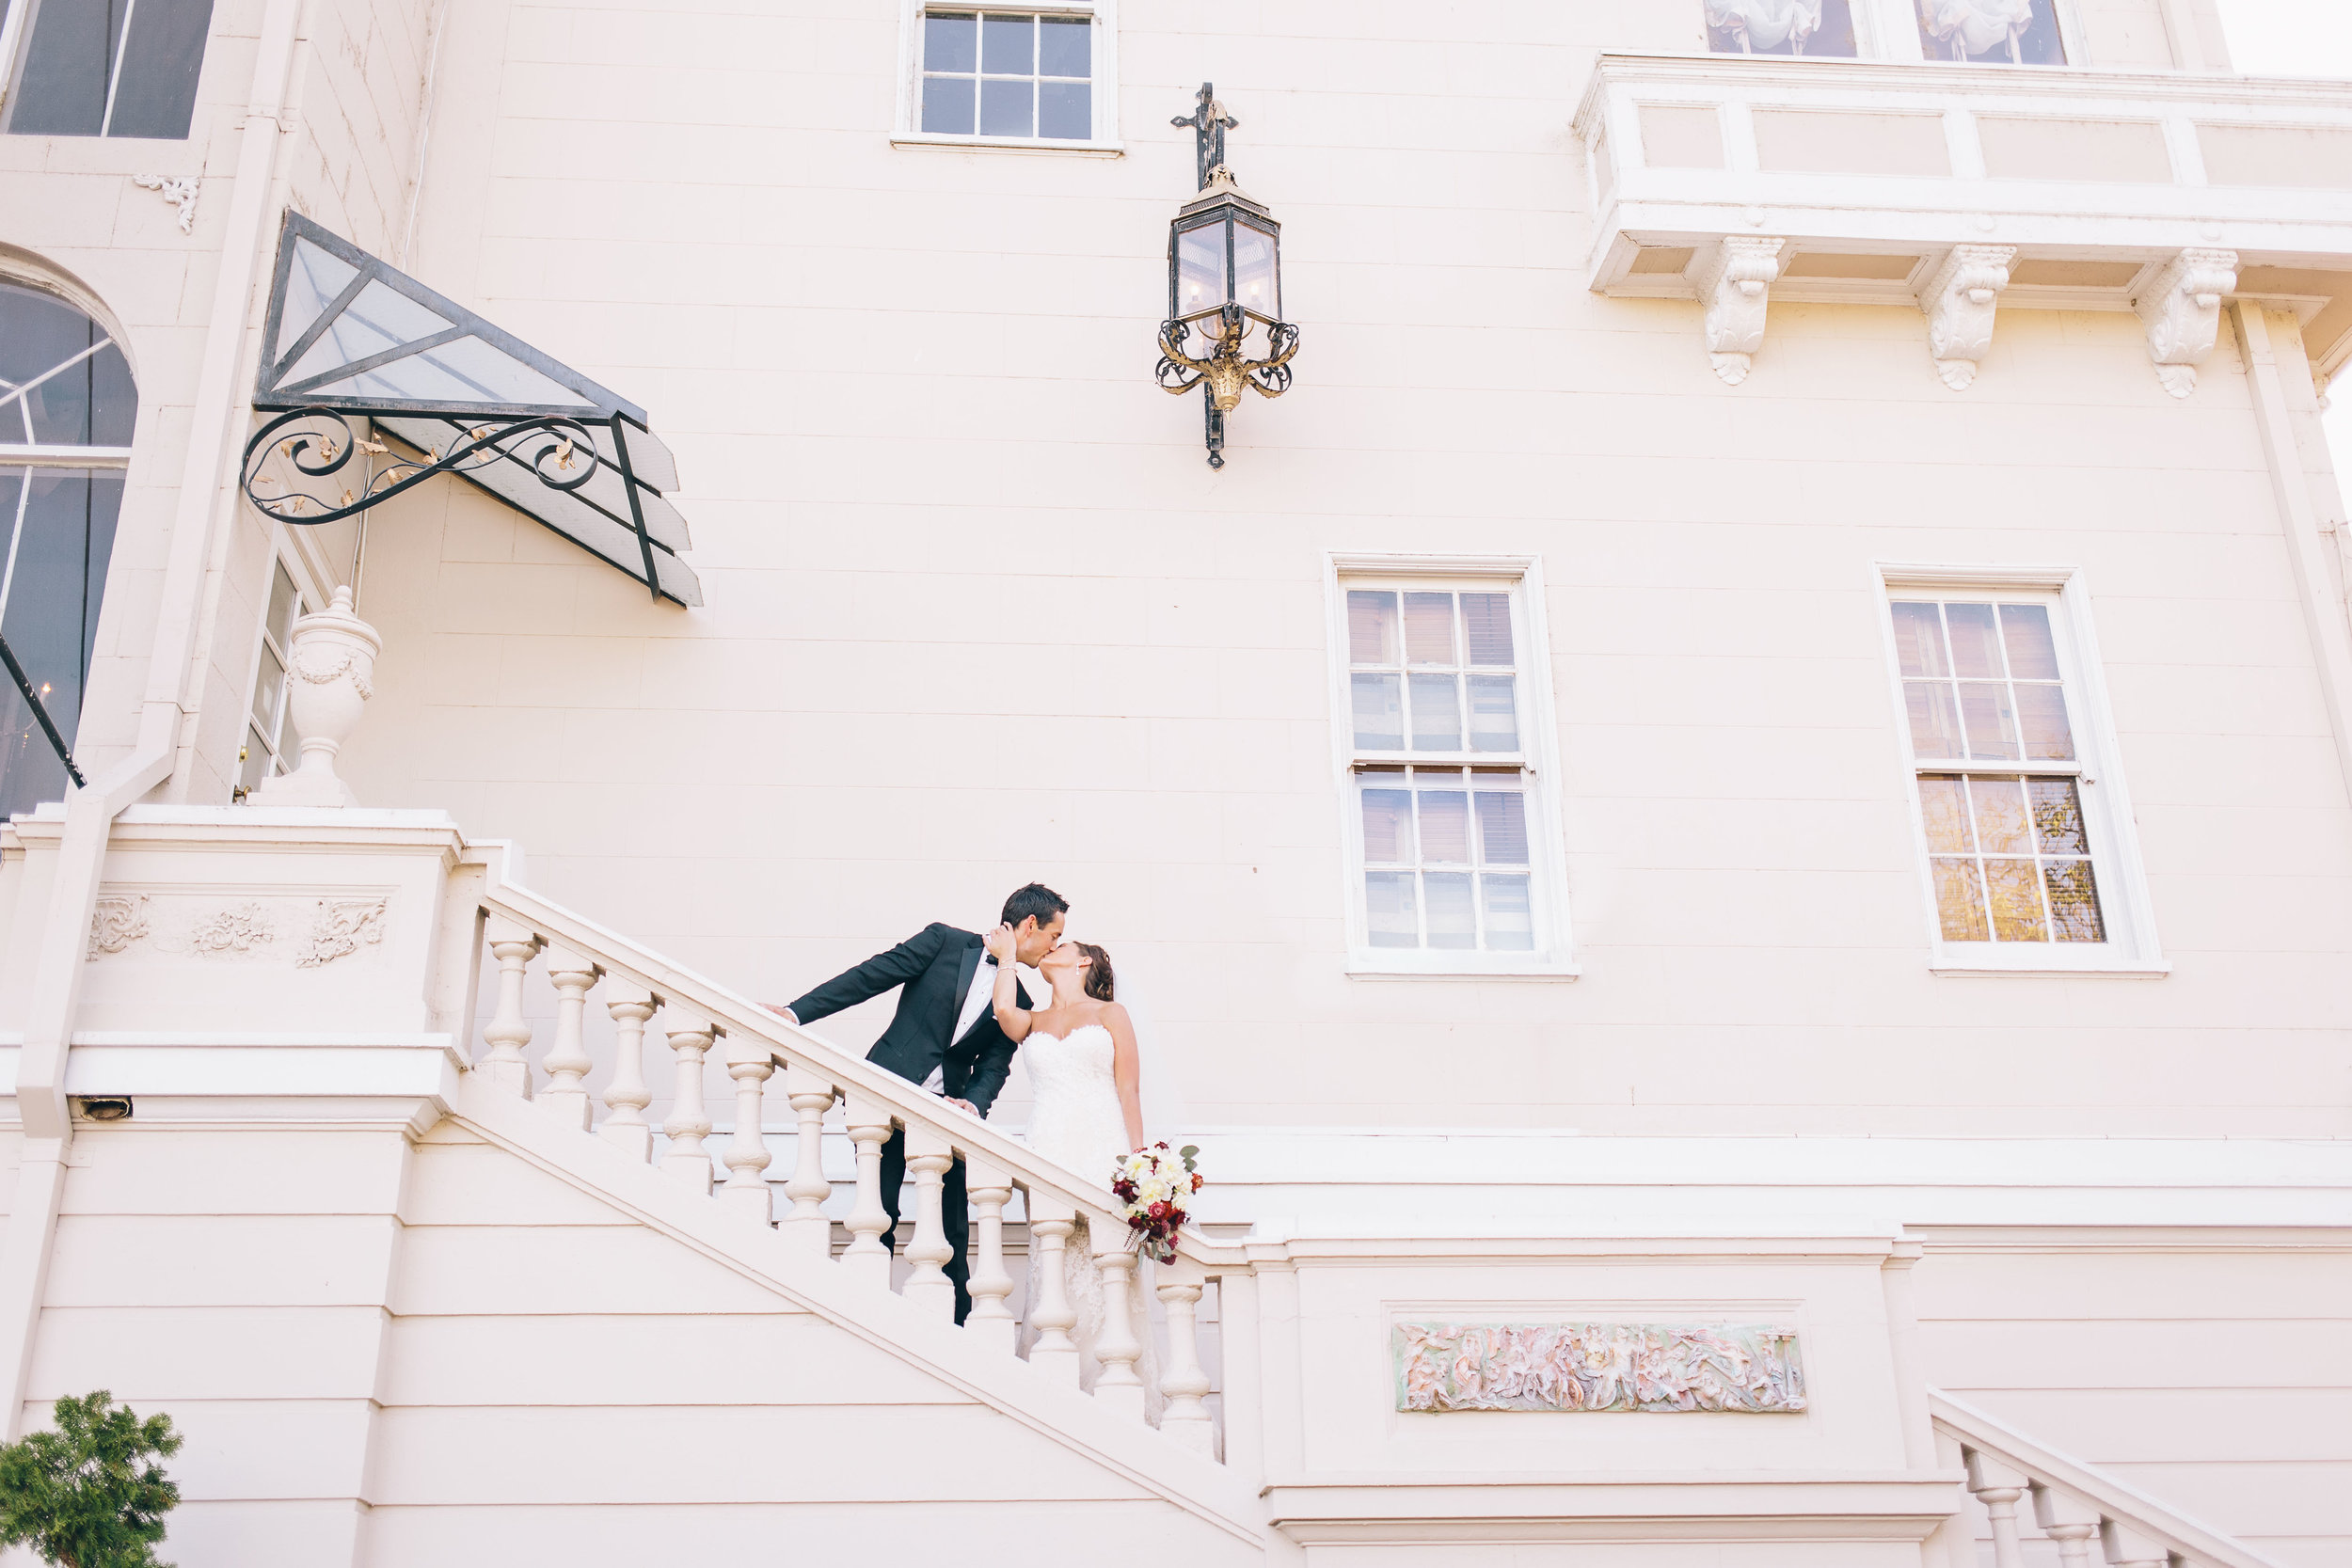 Wedding Bundles - We offer special rates when you bundle your engagement session with a wedding package!